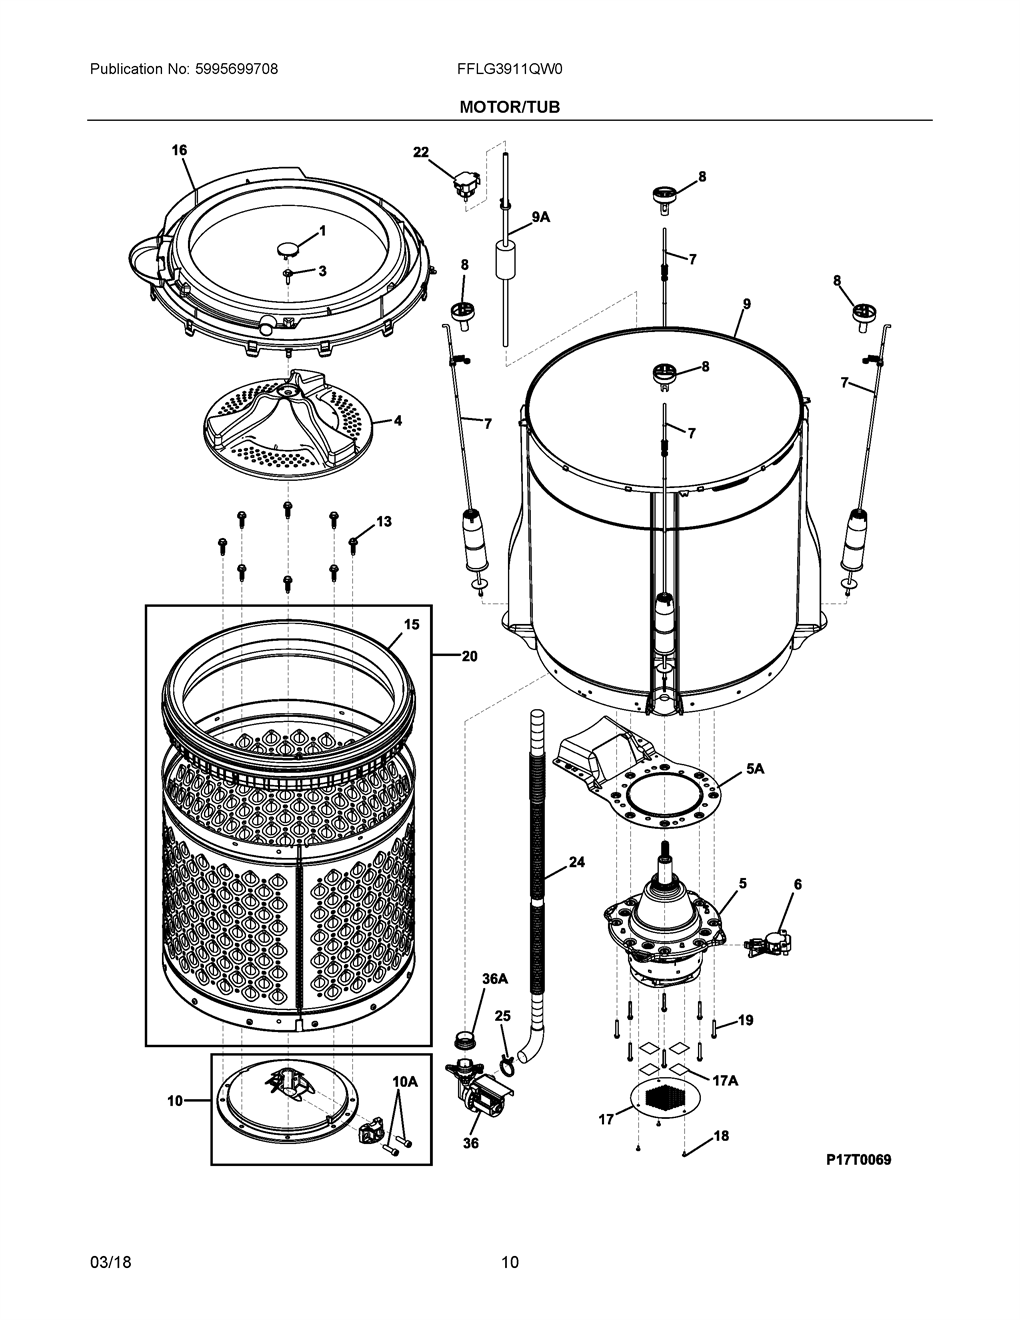 For Frigidaire Replacement Parts Motor Repalcement And Diagram Motor